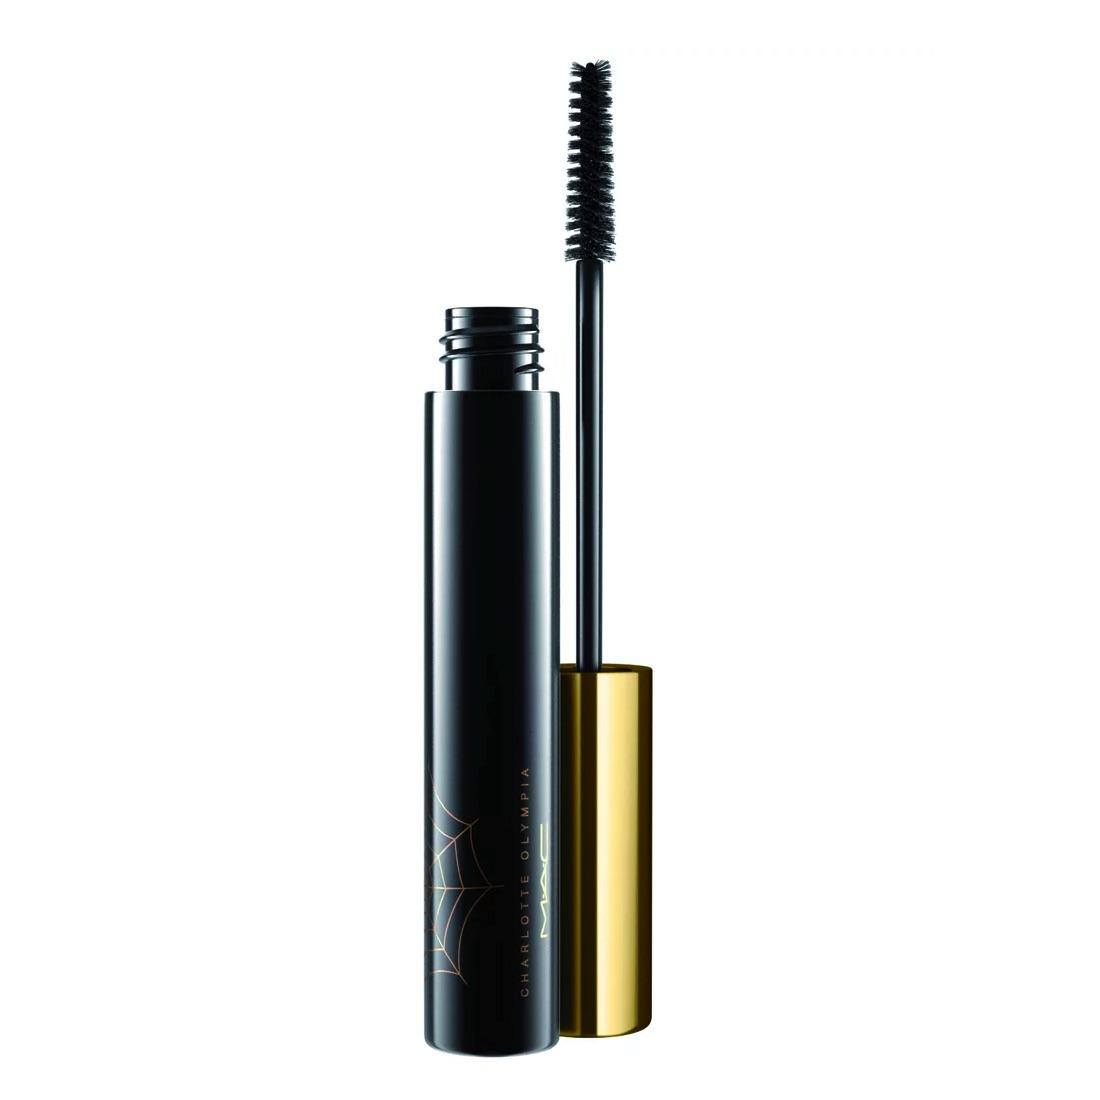 MAC Zoom Lash Mascara Lofty Brown Charlotte Olympia Collection